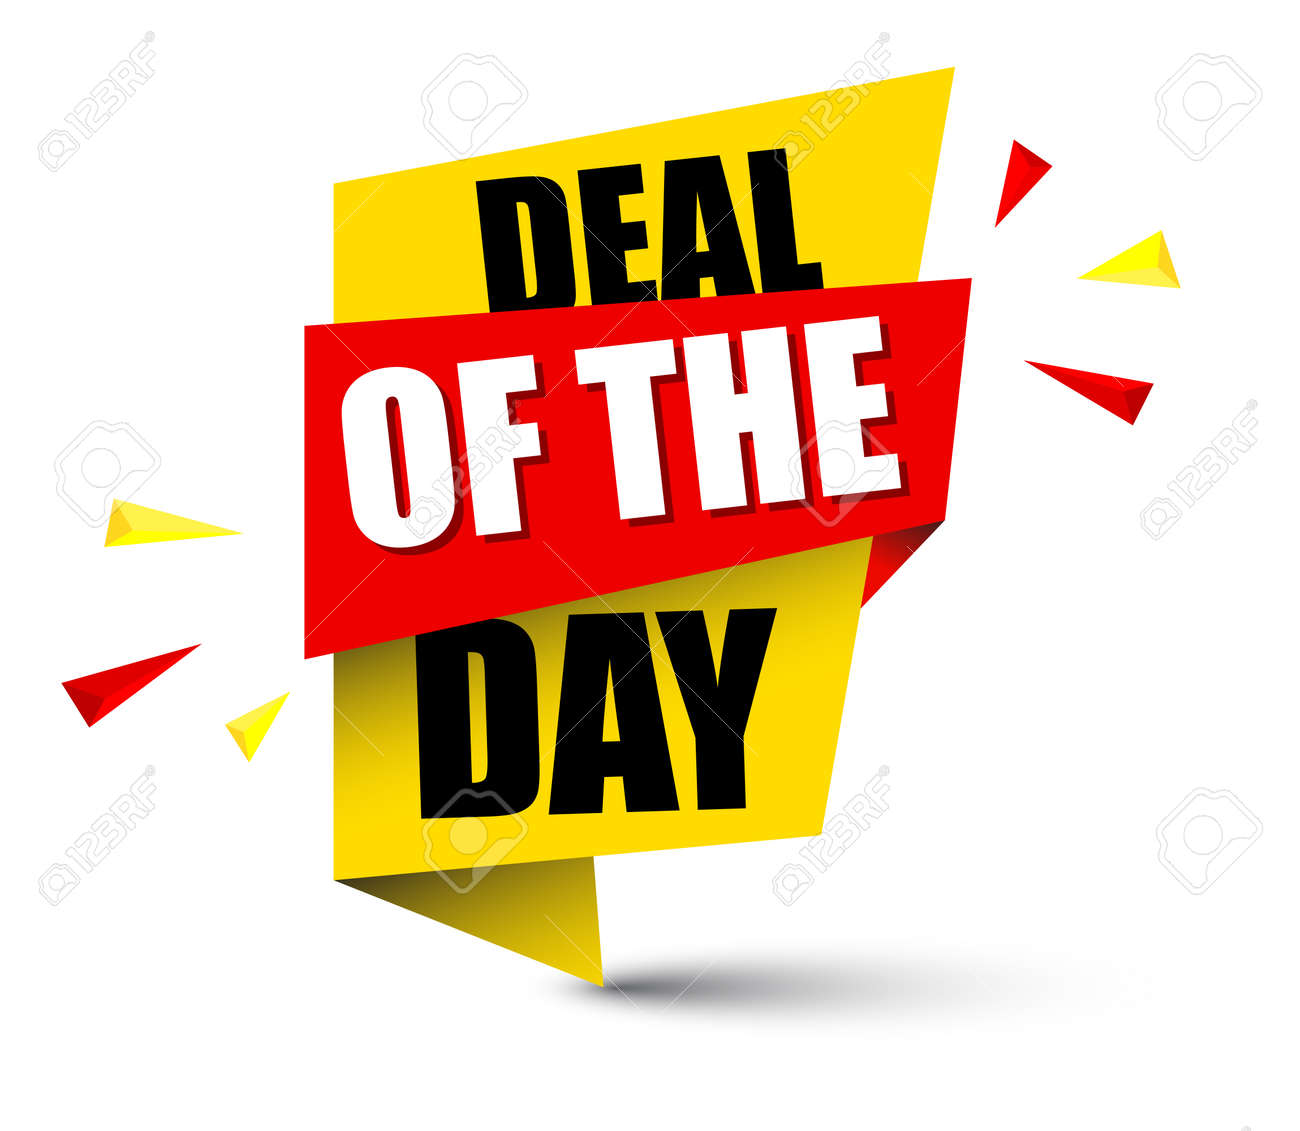 c3159c23d856 banner deal of the day Stock Vector - 93570708